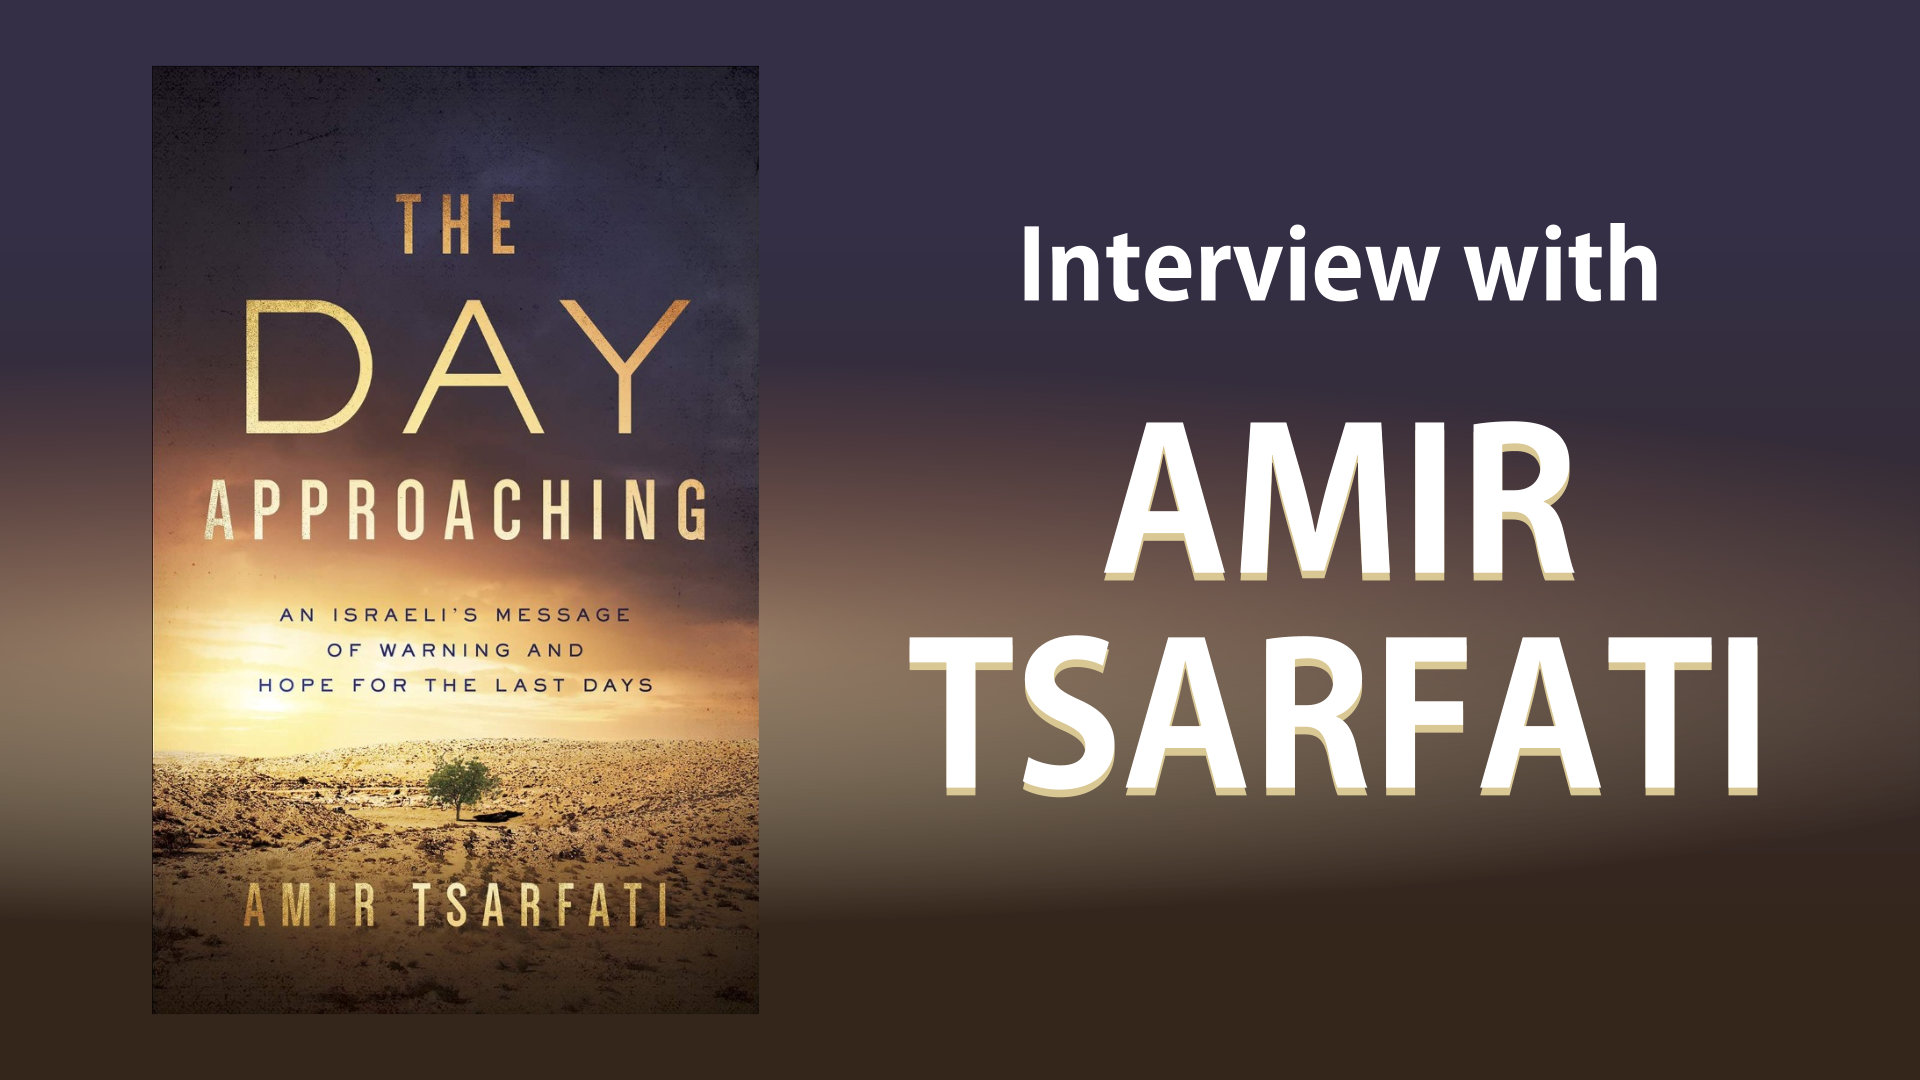 The Day Approaching: Interview with Amir Tsarfati